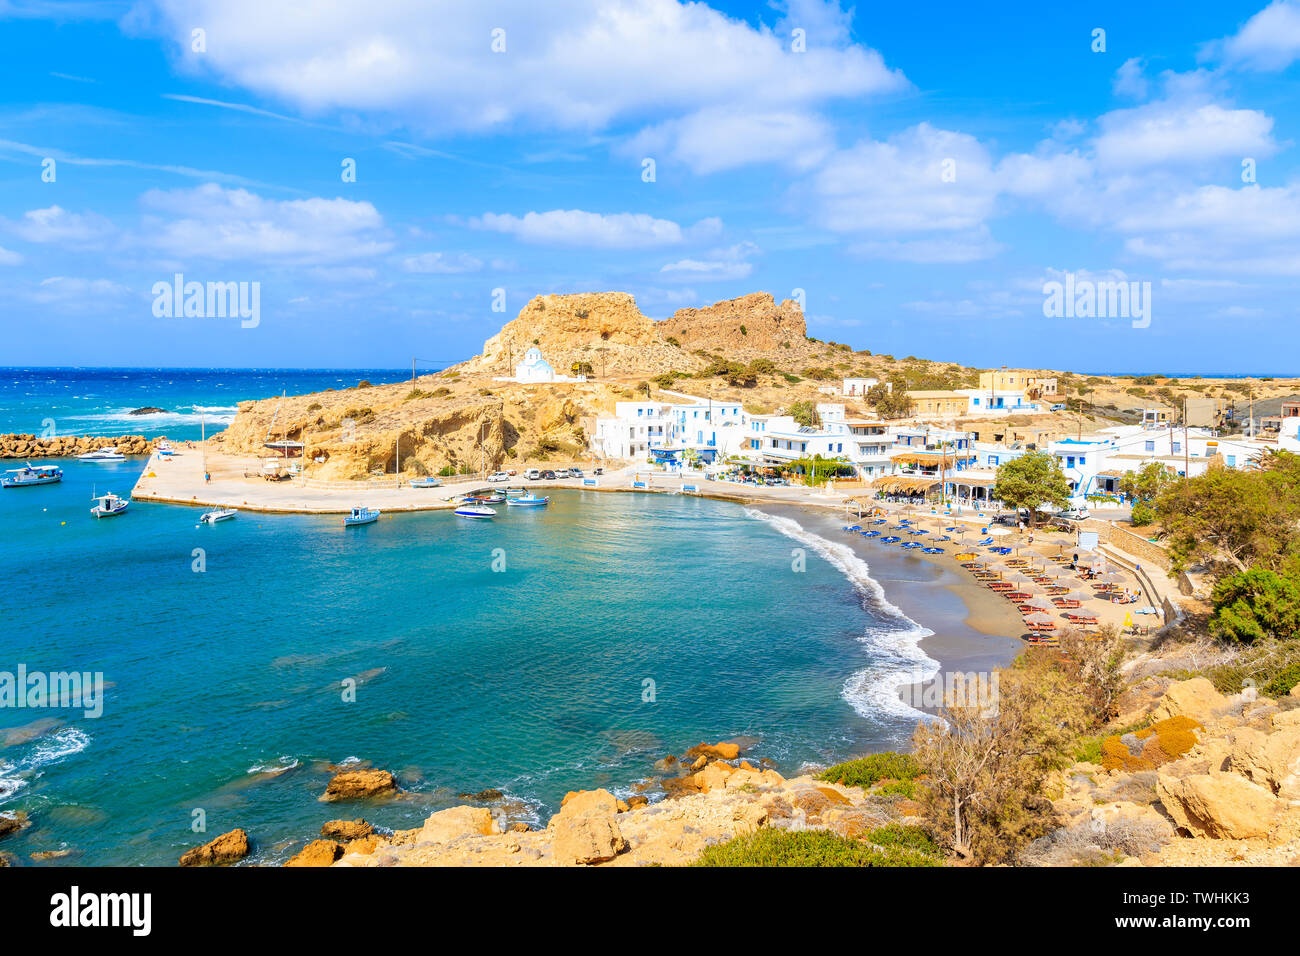 View of beautiful Finiki beach and port, Karpathos island, Greece Stock Photo